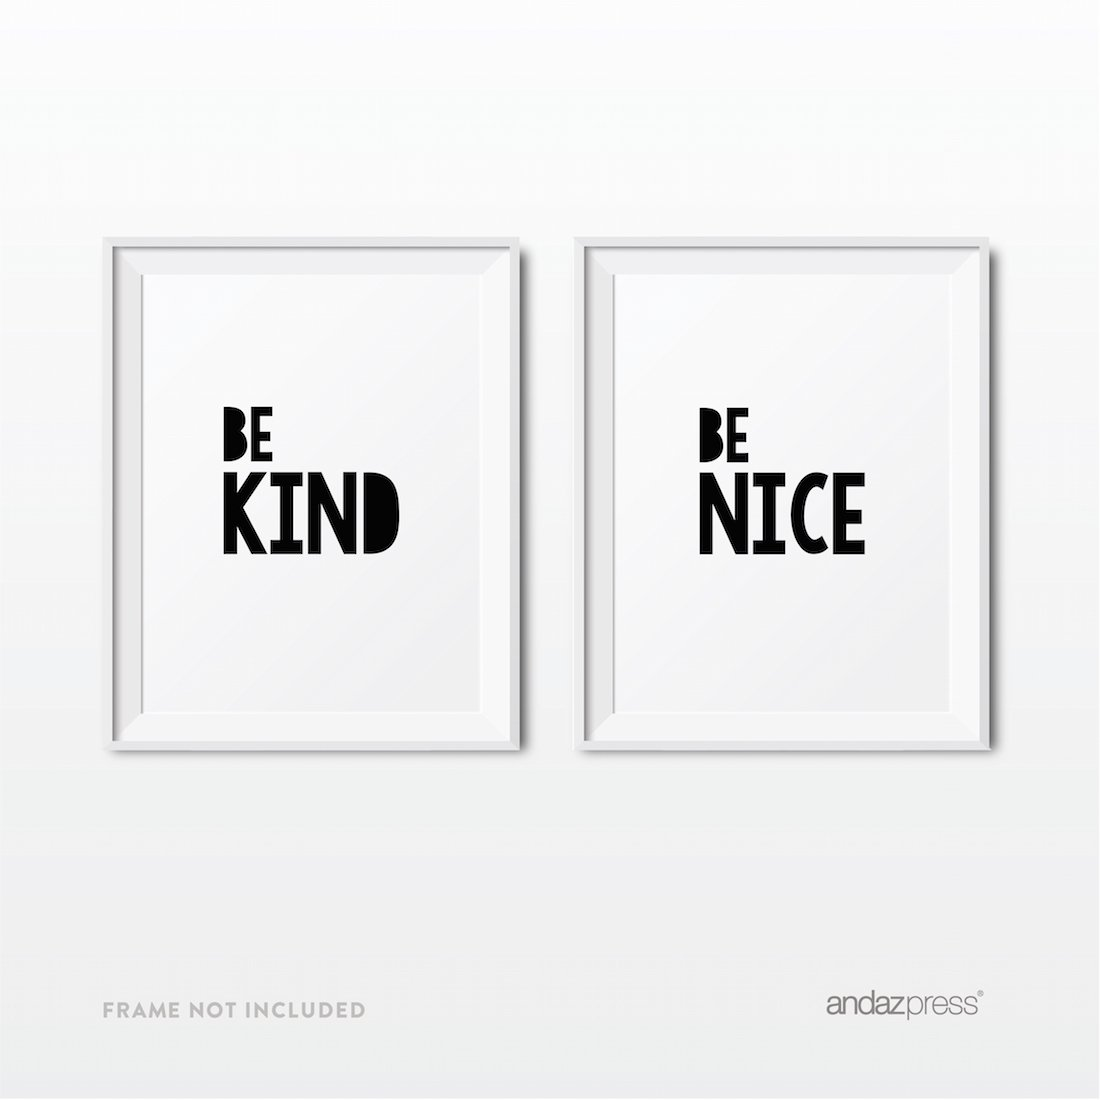 Andaz Press Unframed Nursery Kids Room Wall Art, Modern Black and White, Be Kind, Be Nice, 8.5x11-inch Print Poster Signs Gift, 2-Pack, Playroom, Classroom Decor, Decorations